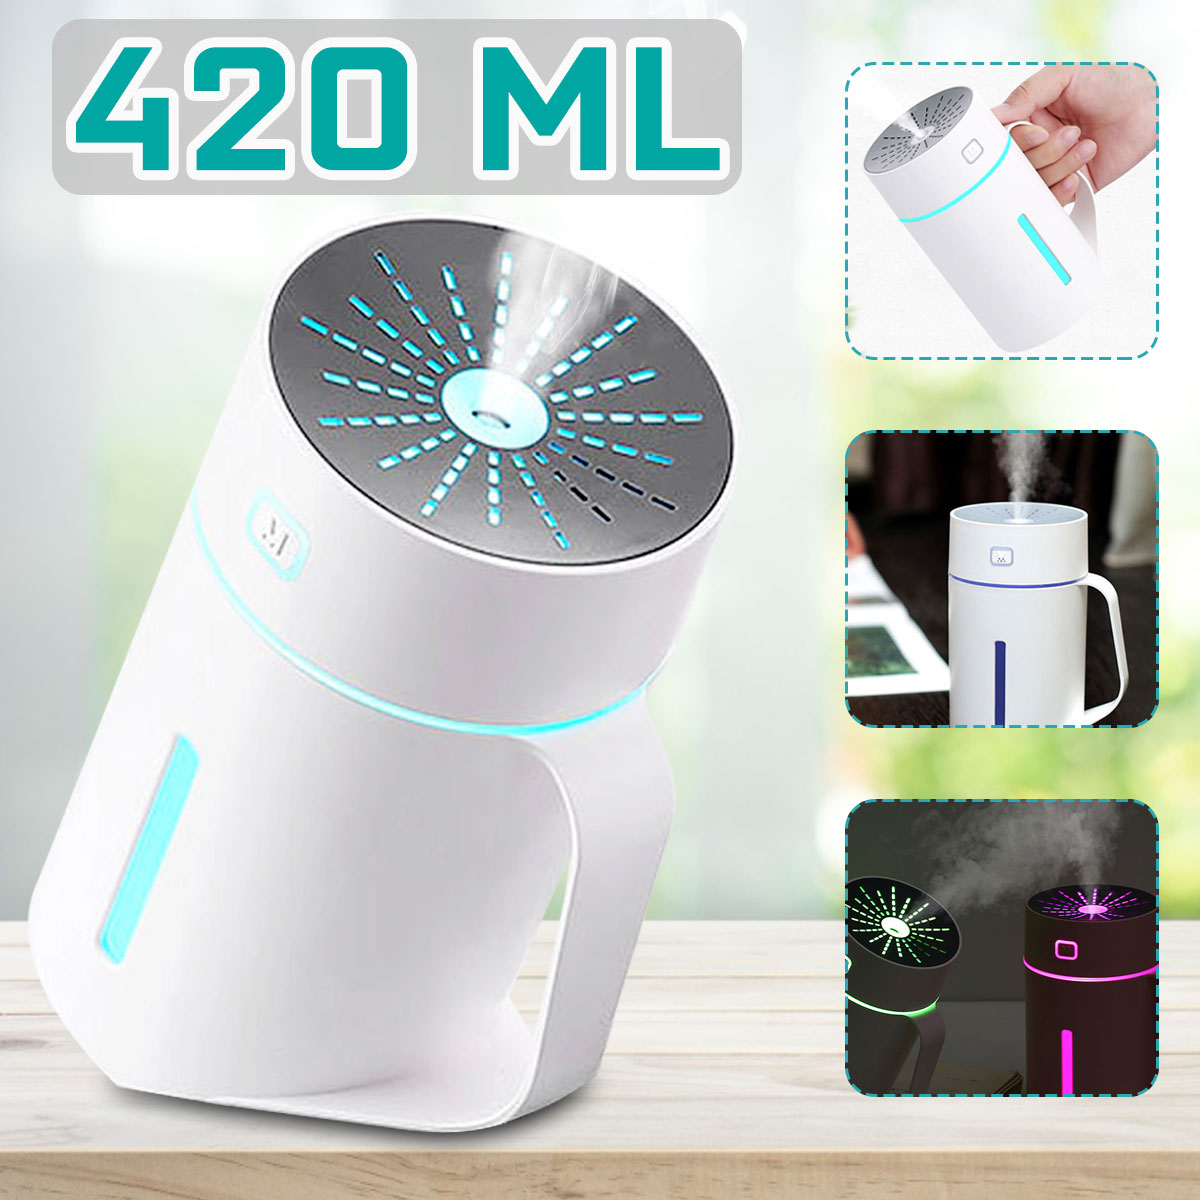 420ML Portable Mini 7 Color LED Air Humidifier Diffuser USB Battery Wired Wireless Humidifier Night Light For Home Office Gifts